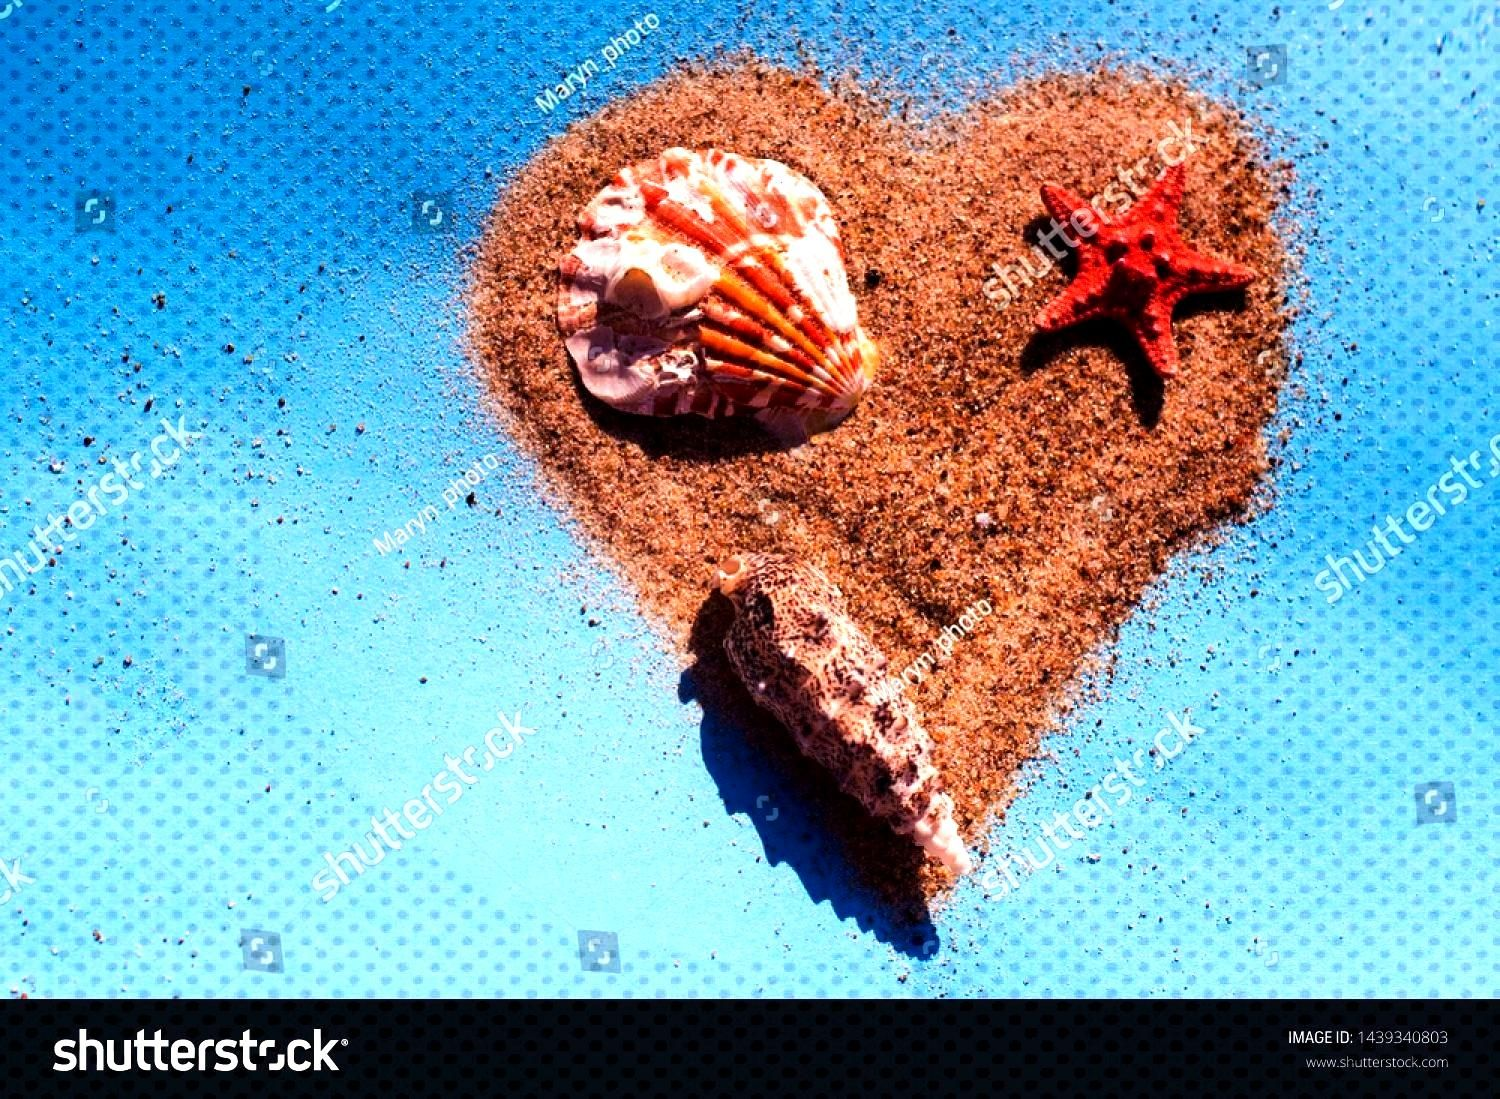 colored shells and a heart of sand on a blue paper texture. Joyful concept of leisure, holidays and